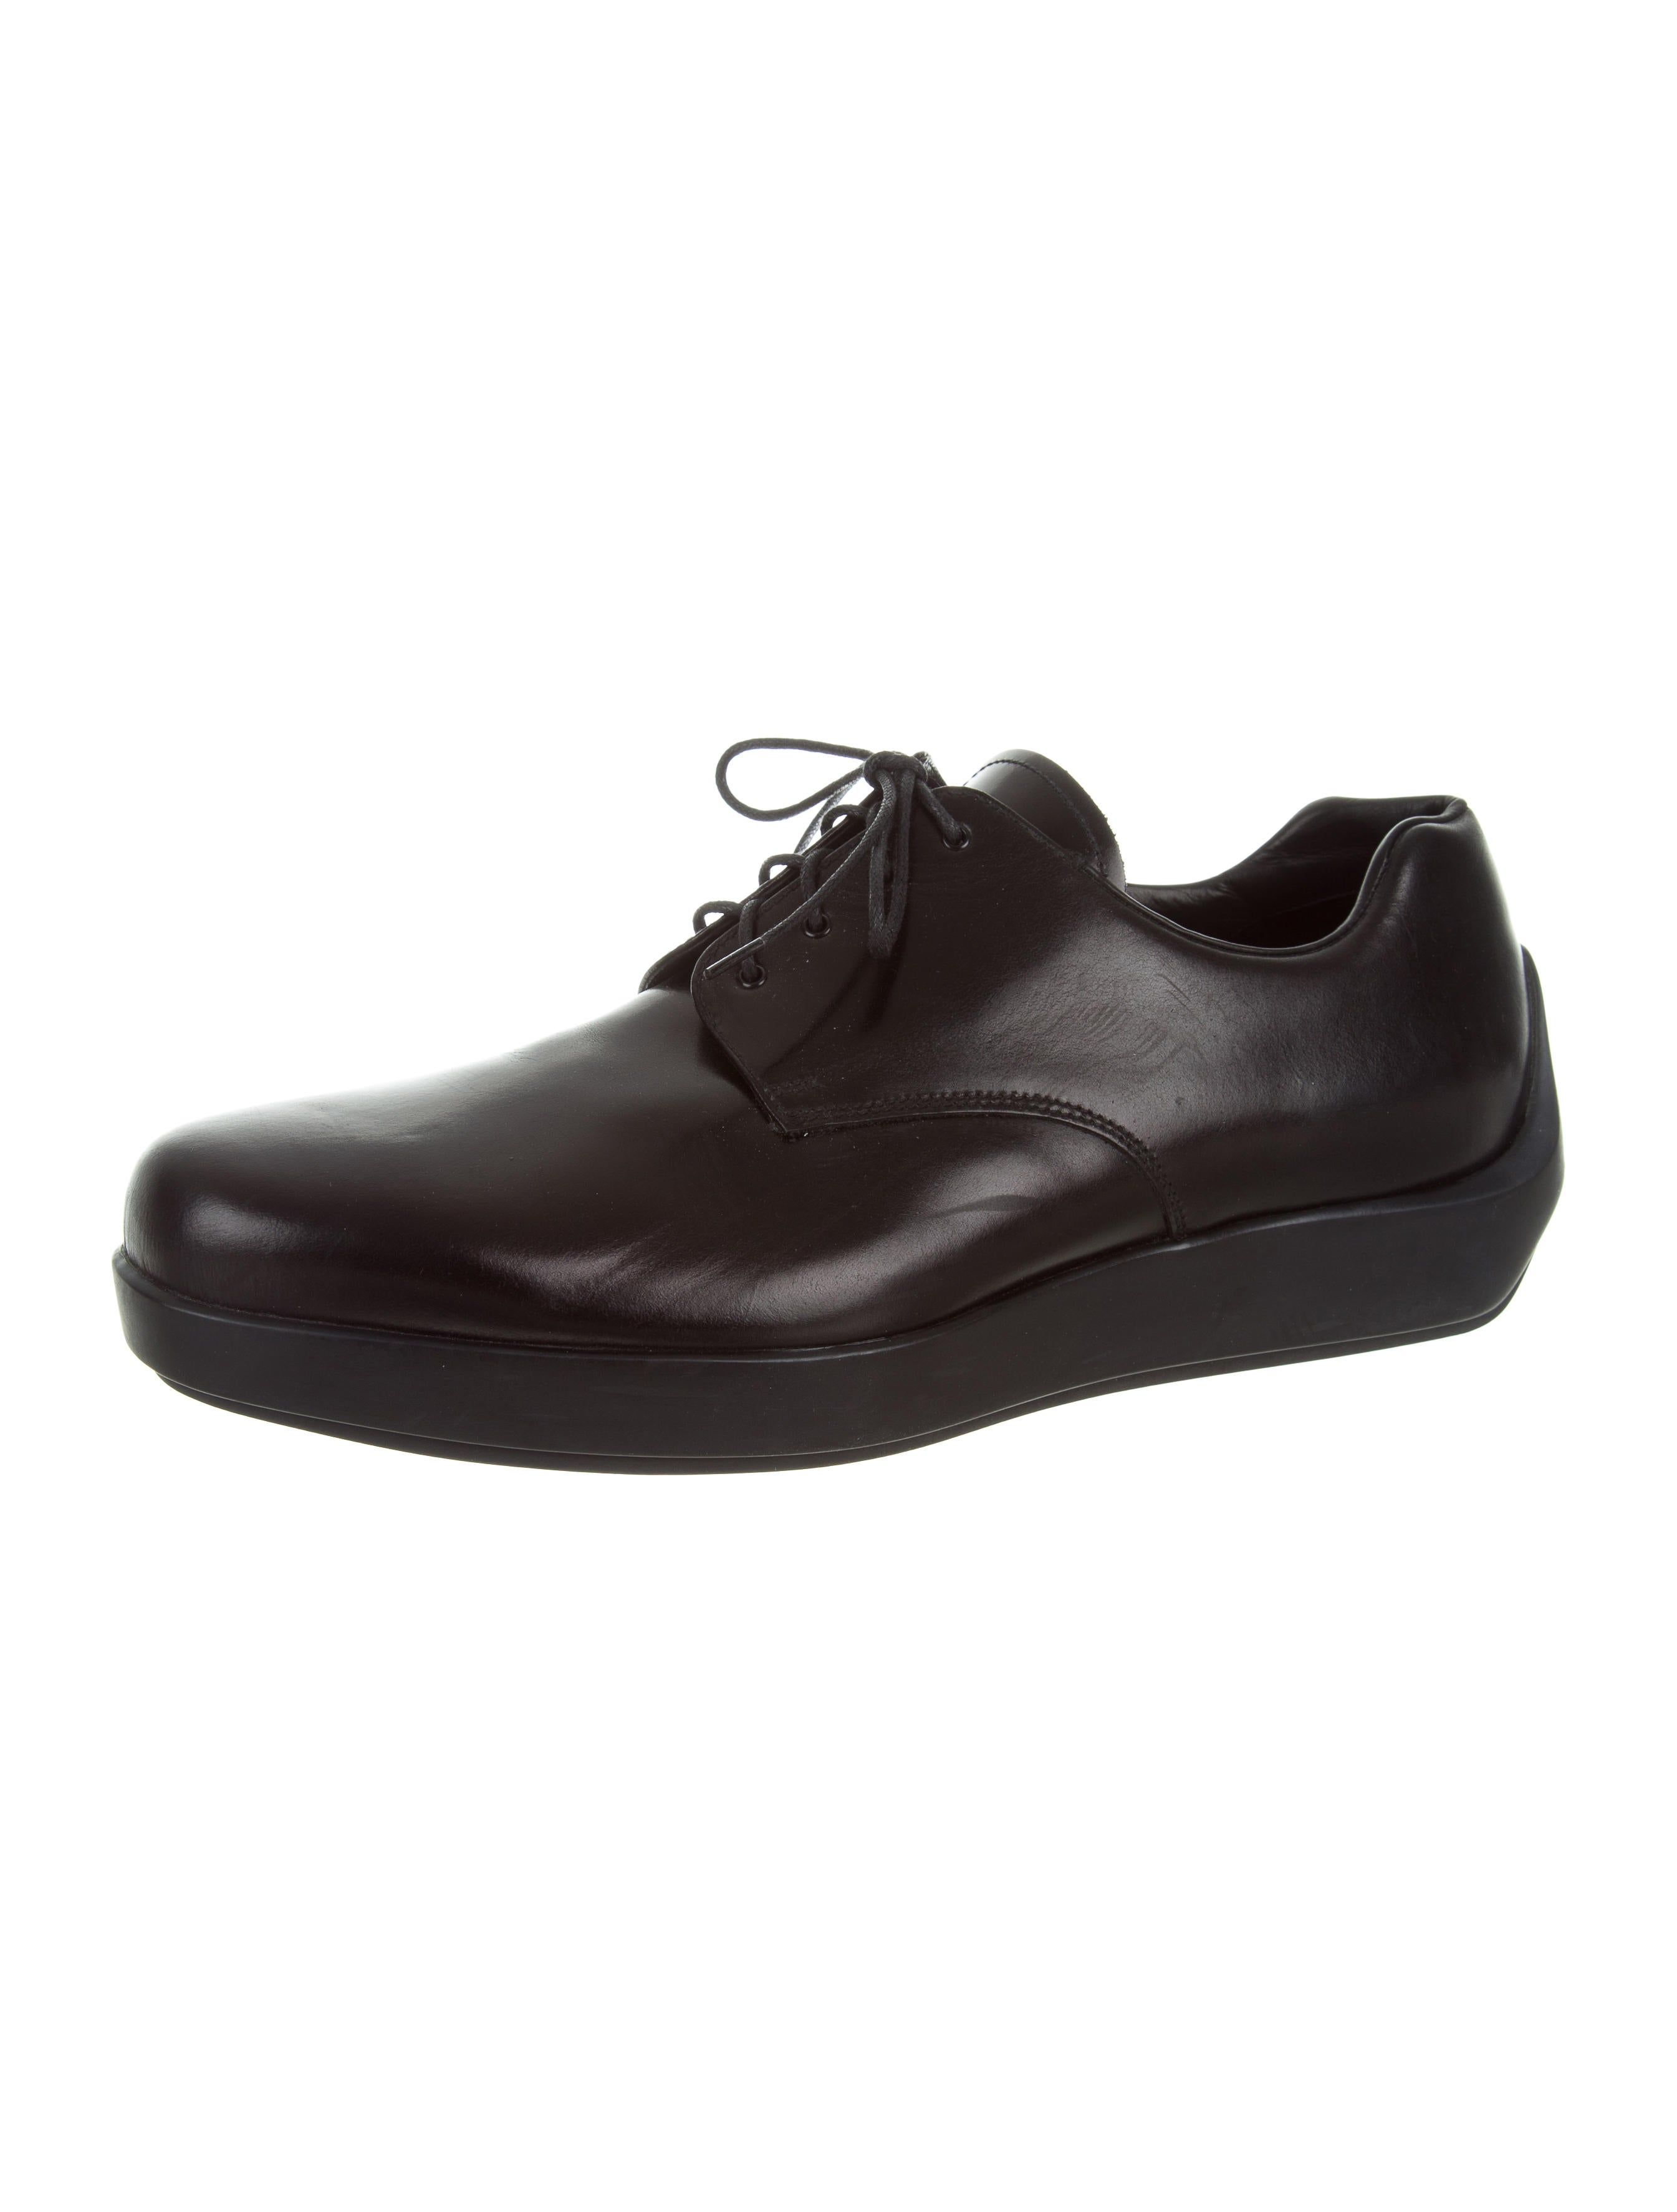 prada leather derby shoes shoes pra149605 the realreal